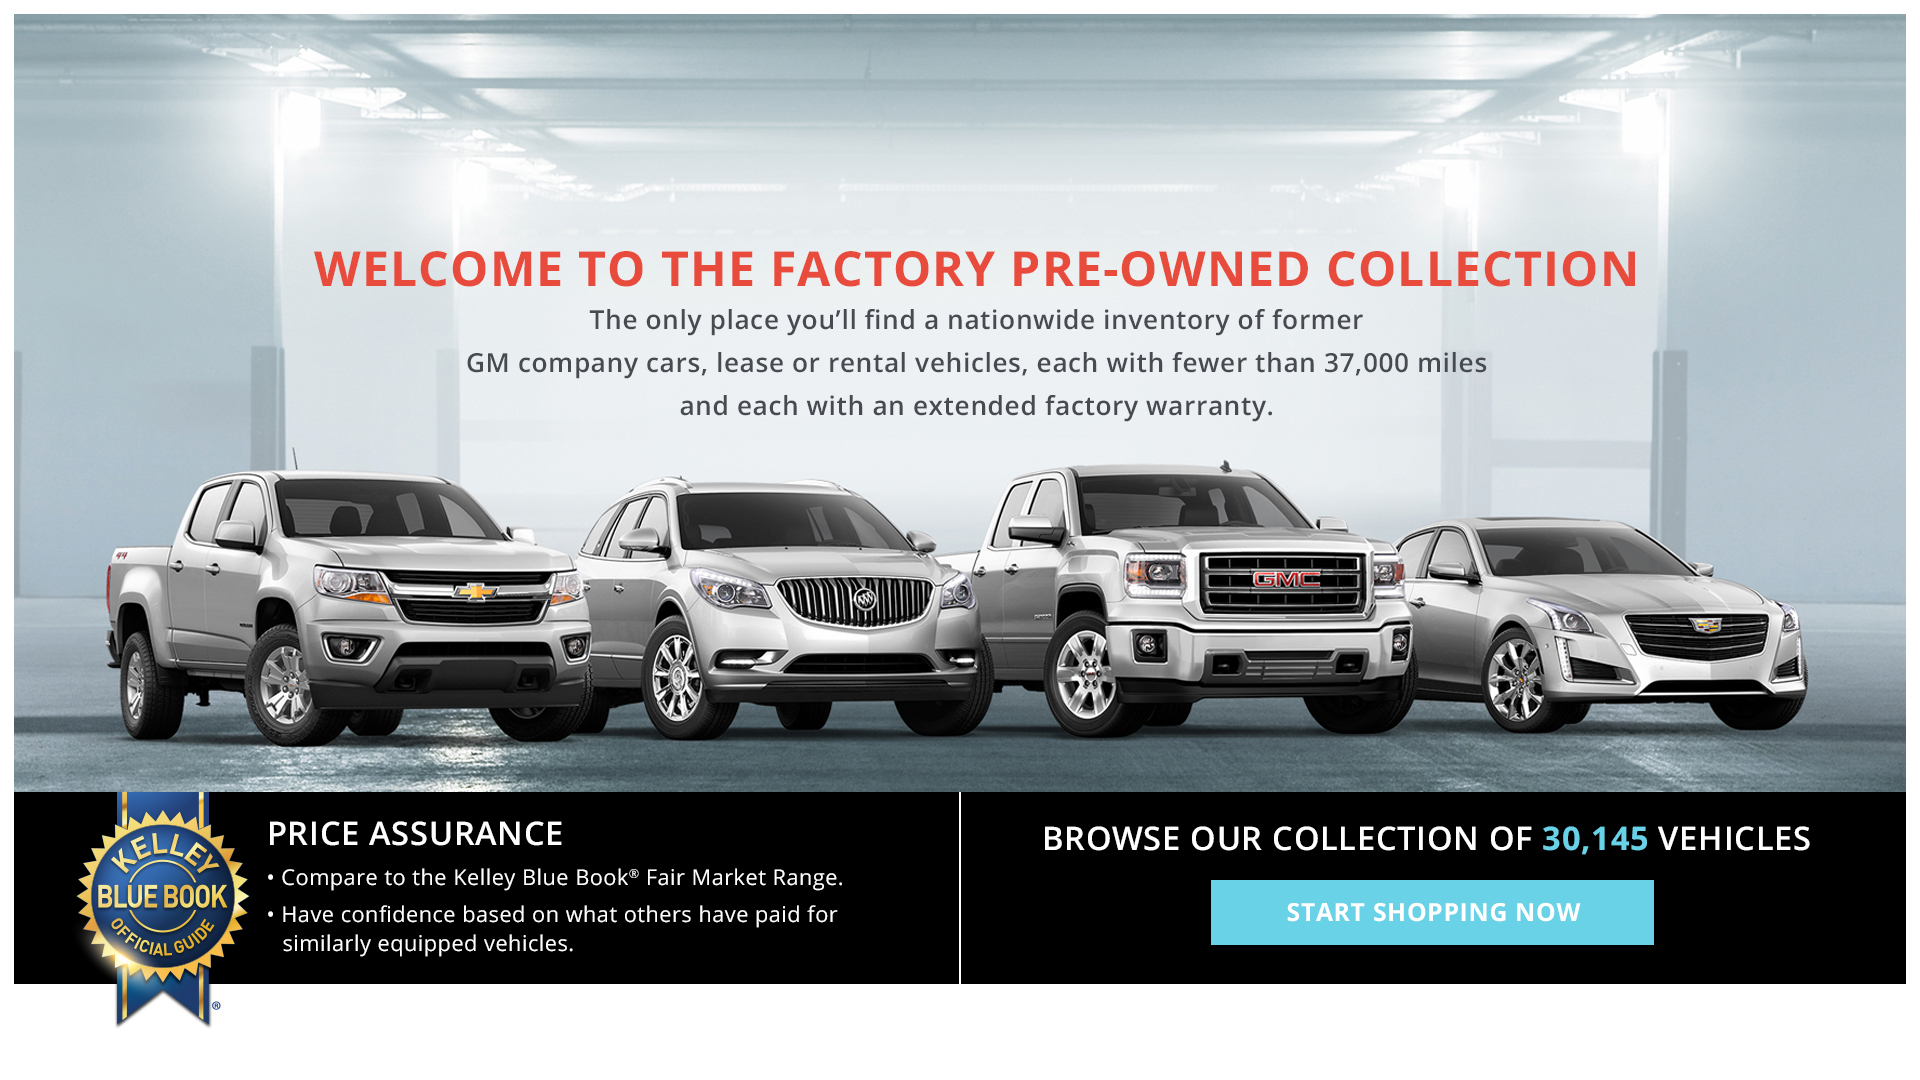 gm factory pre owned collection website takes used car salespeople mostly out of the equation